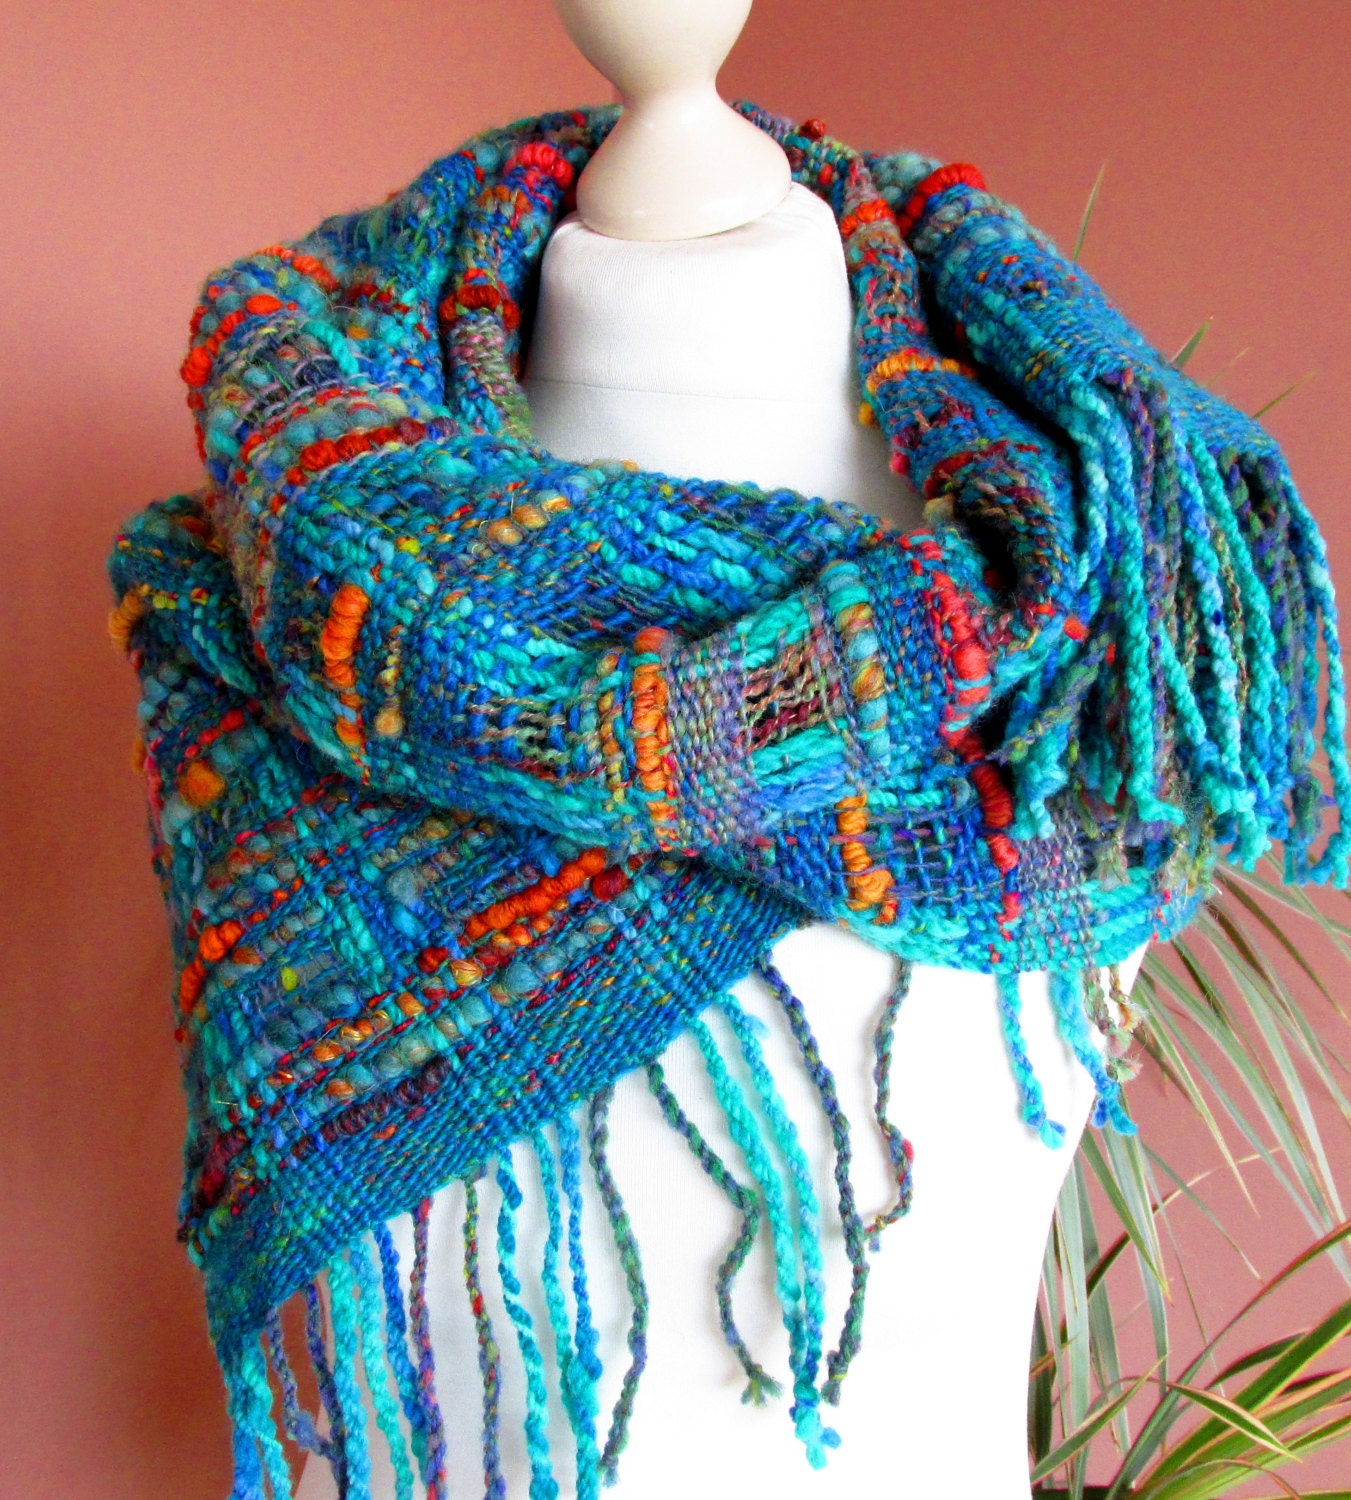 Our fair trade scarves and shawls are hand woven using natural fibers including wool, silk, and cotton. We also carry handmade metal craft jewelry, gifts and items for the home. Our designer scarves and shawls combine the best of artisan traditions with contemporary styles for both women and men.